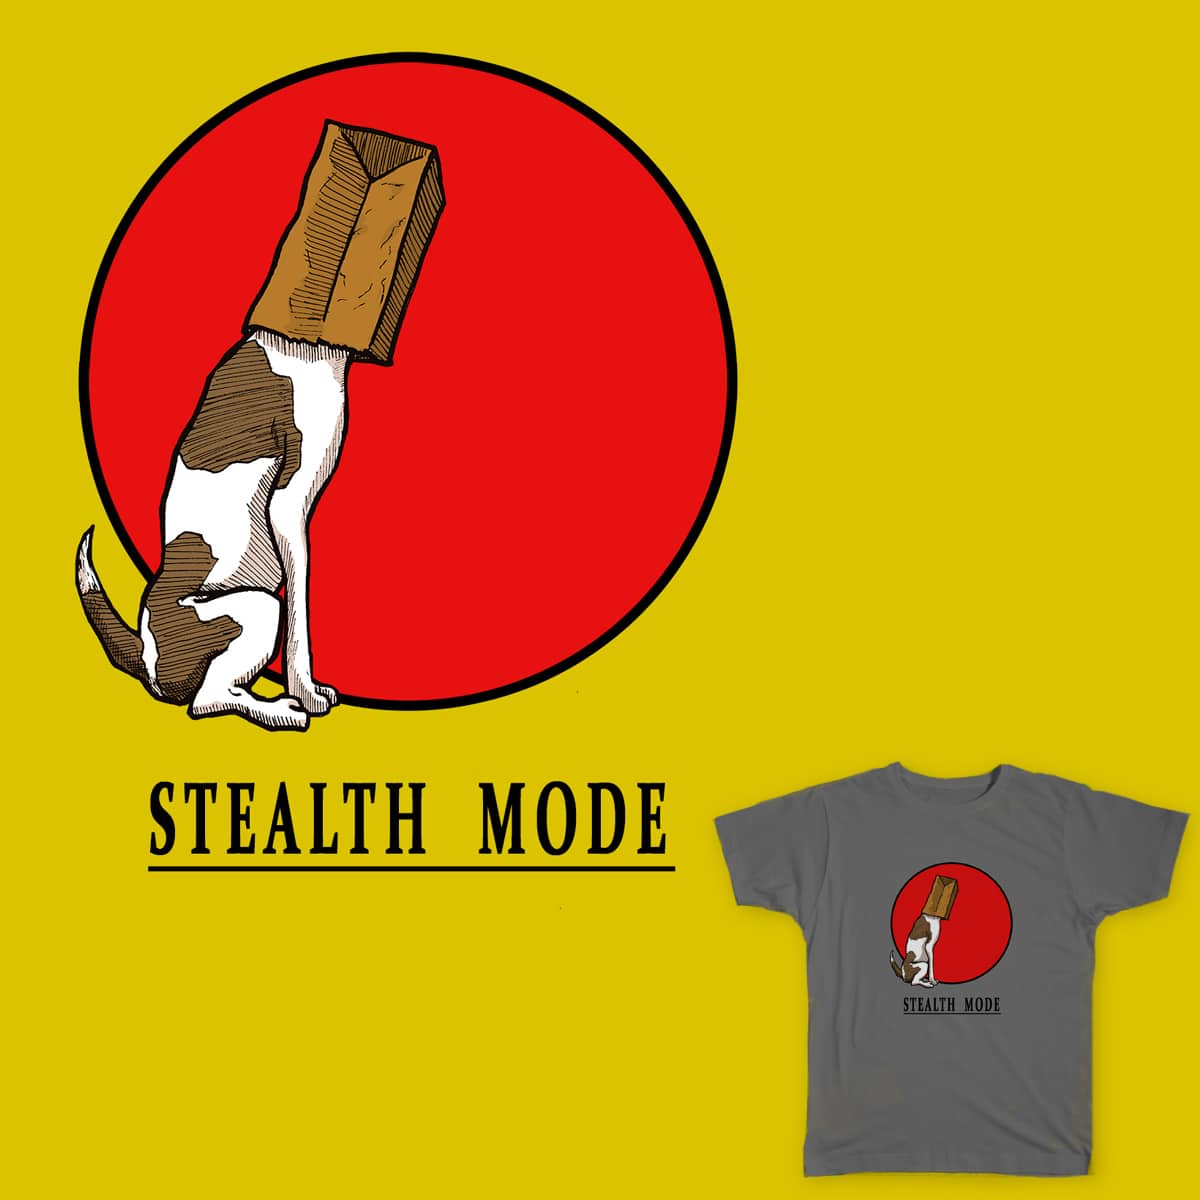 Stealth Mode by jaysmorales on Threadless